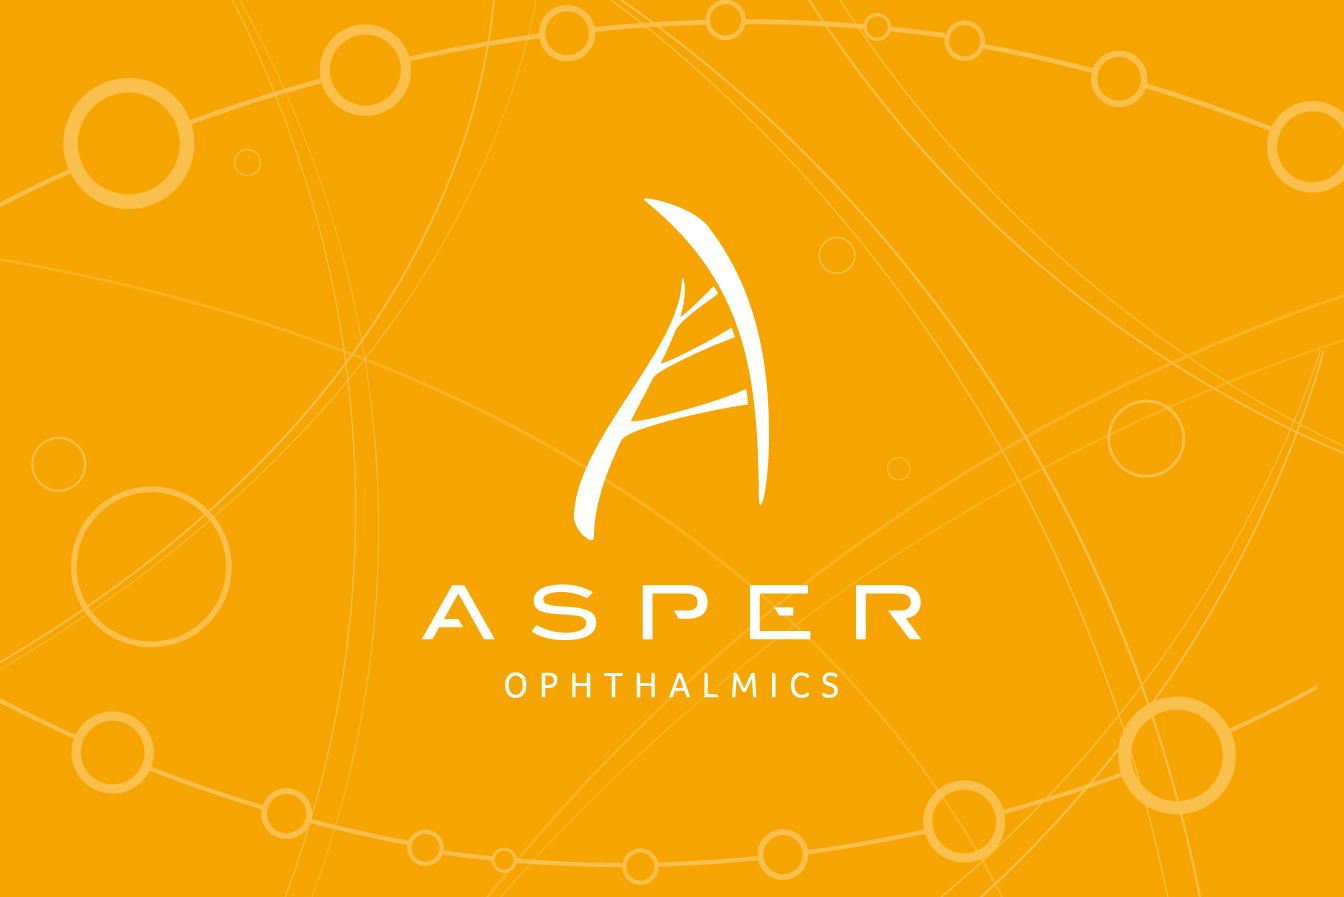 News in Asper Ophthalmics